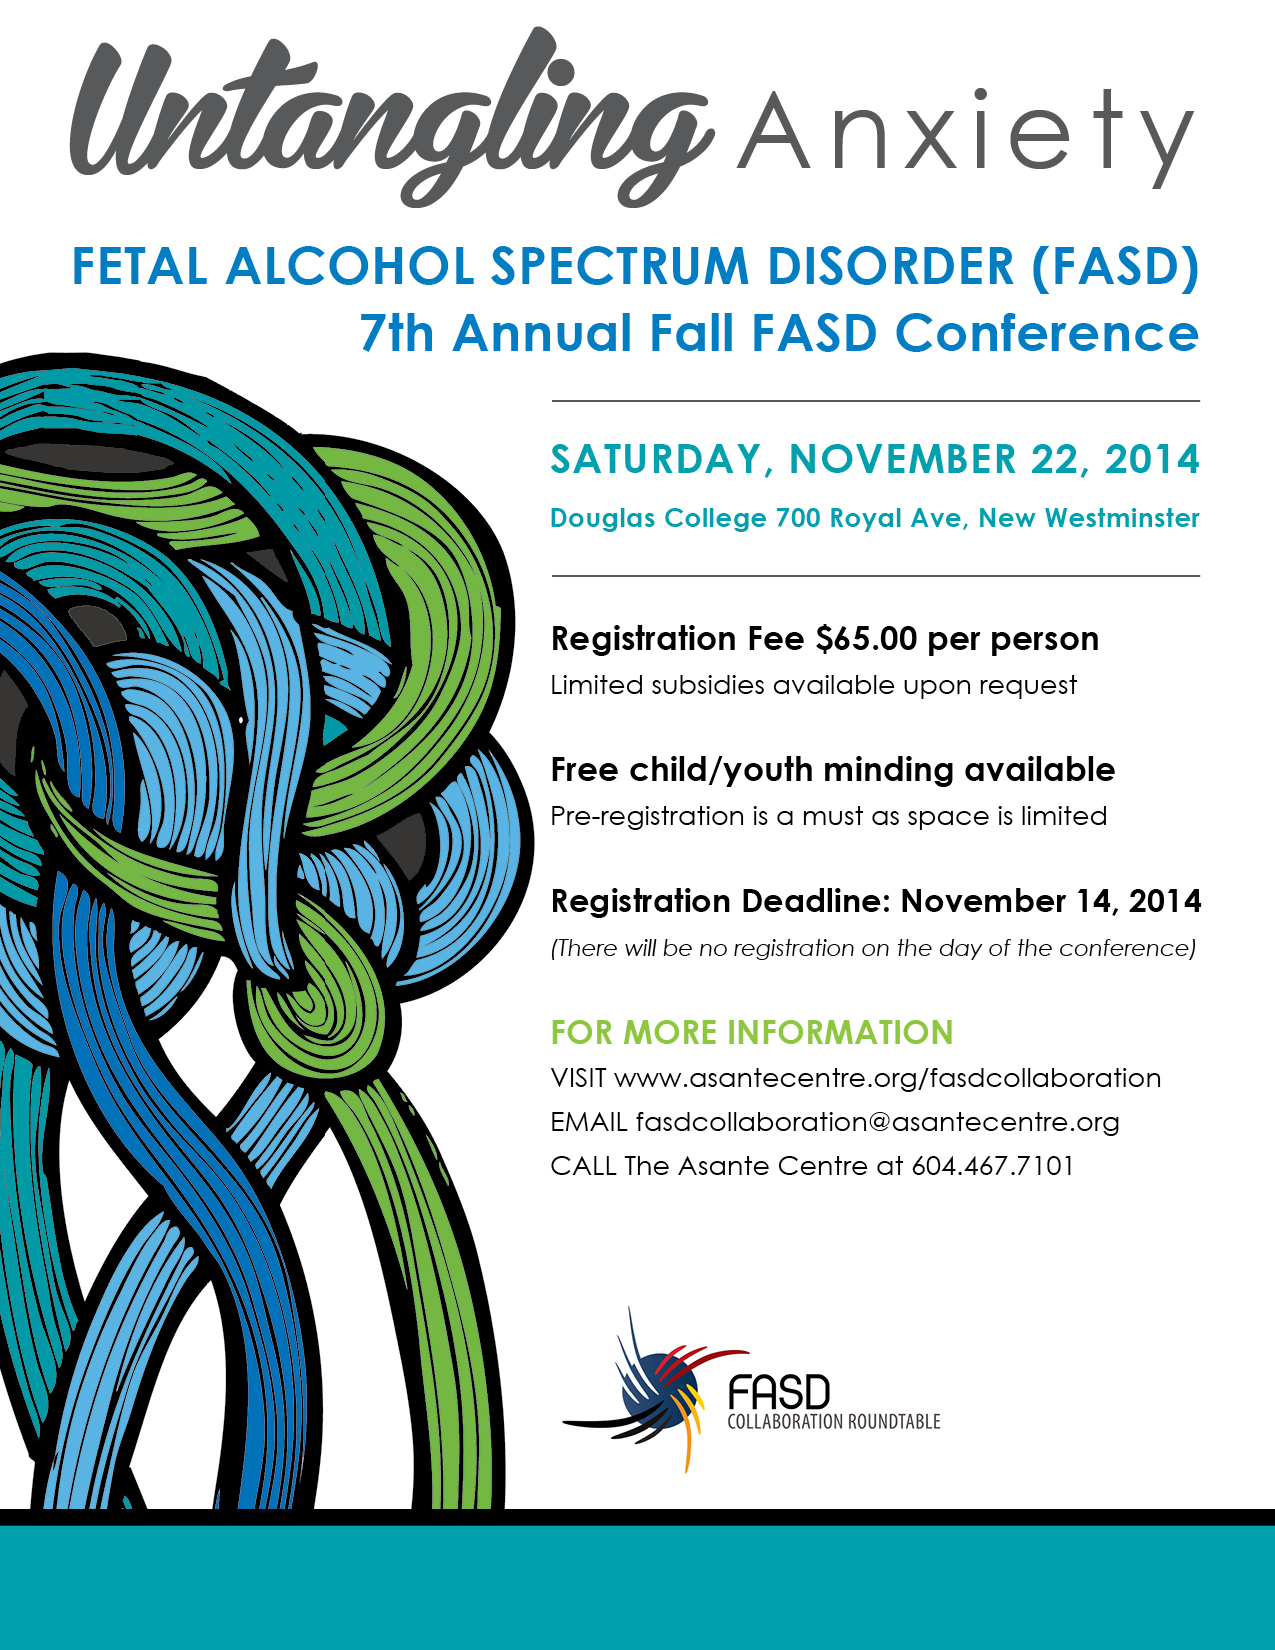 FASD_Registration_Cover.jpg